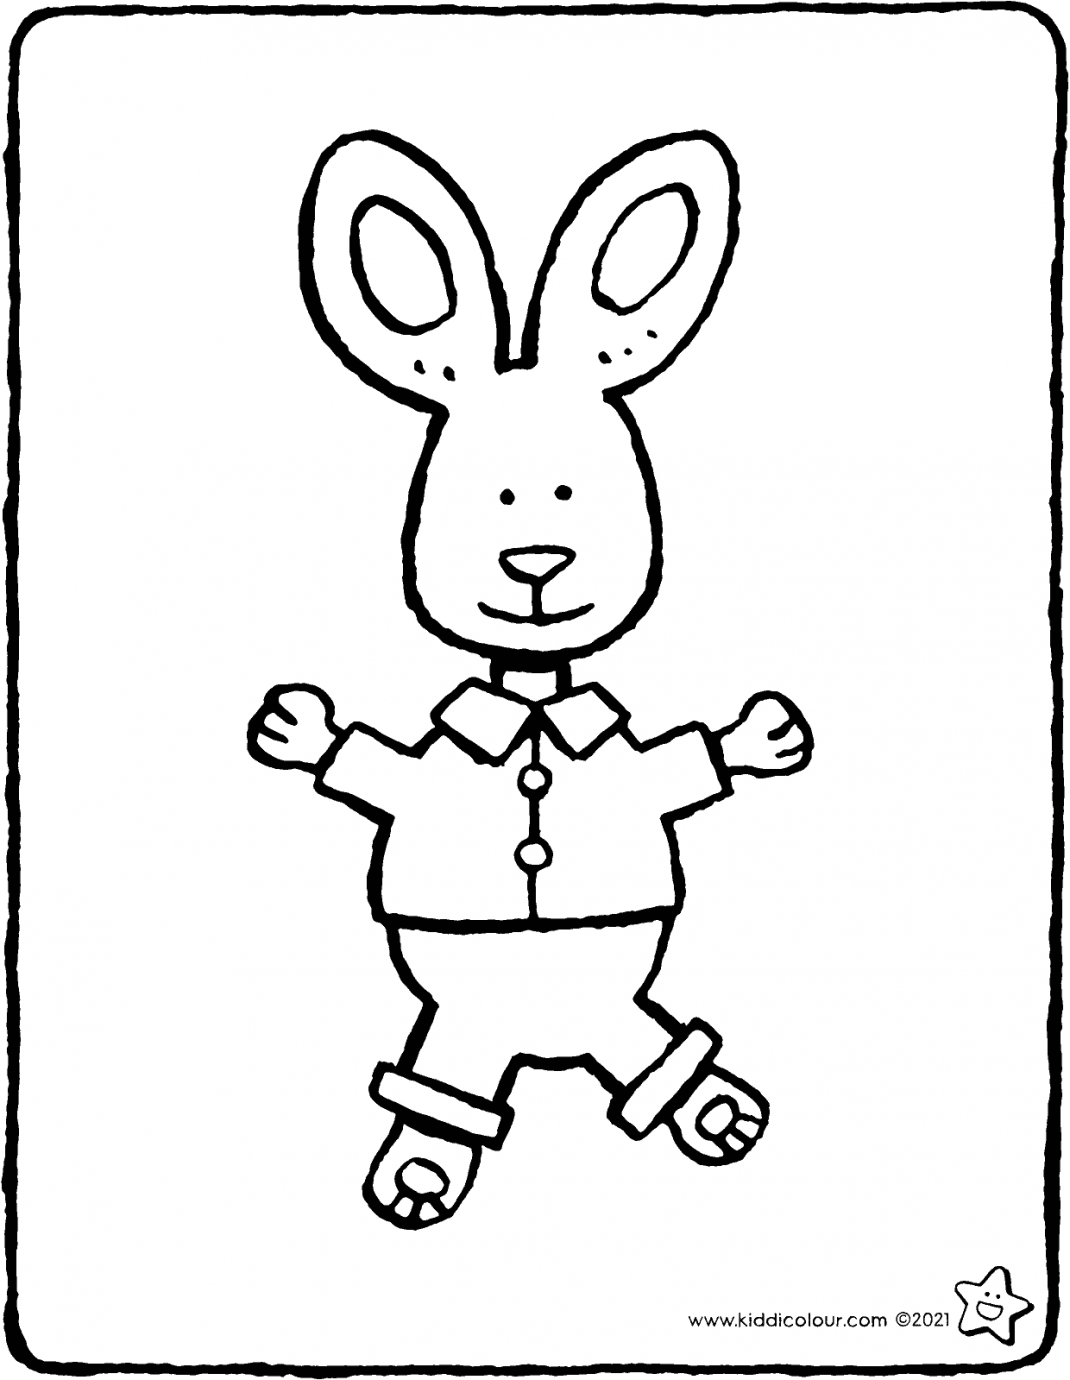 rabbit cuddly toy colouring page drawing picture 01V